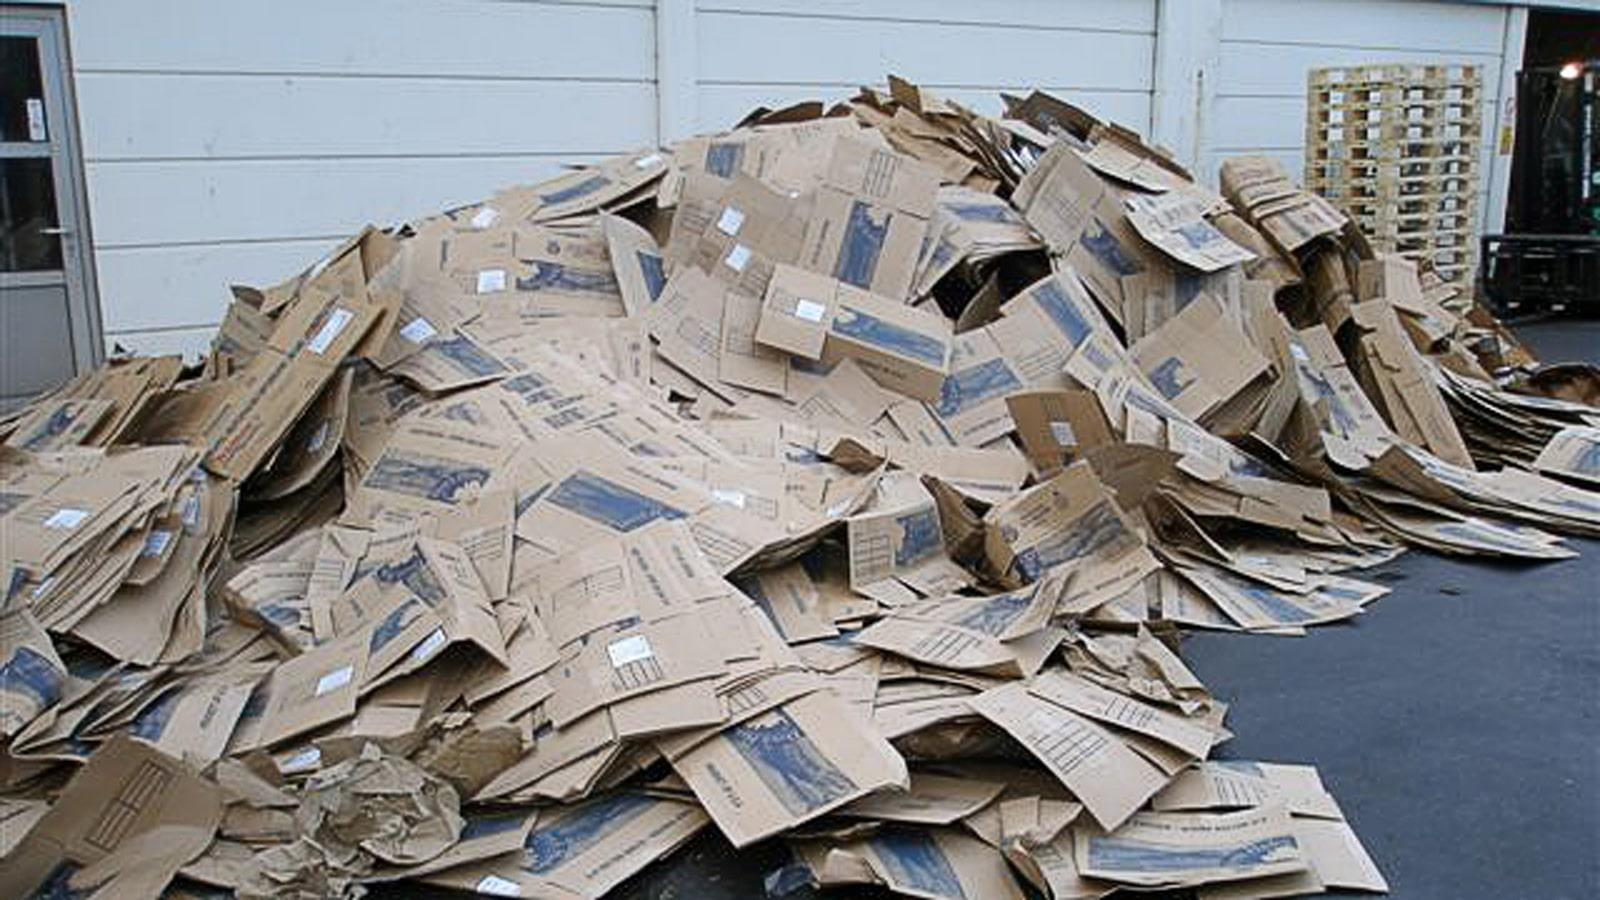 Heap of cardboard waste outside on the ground